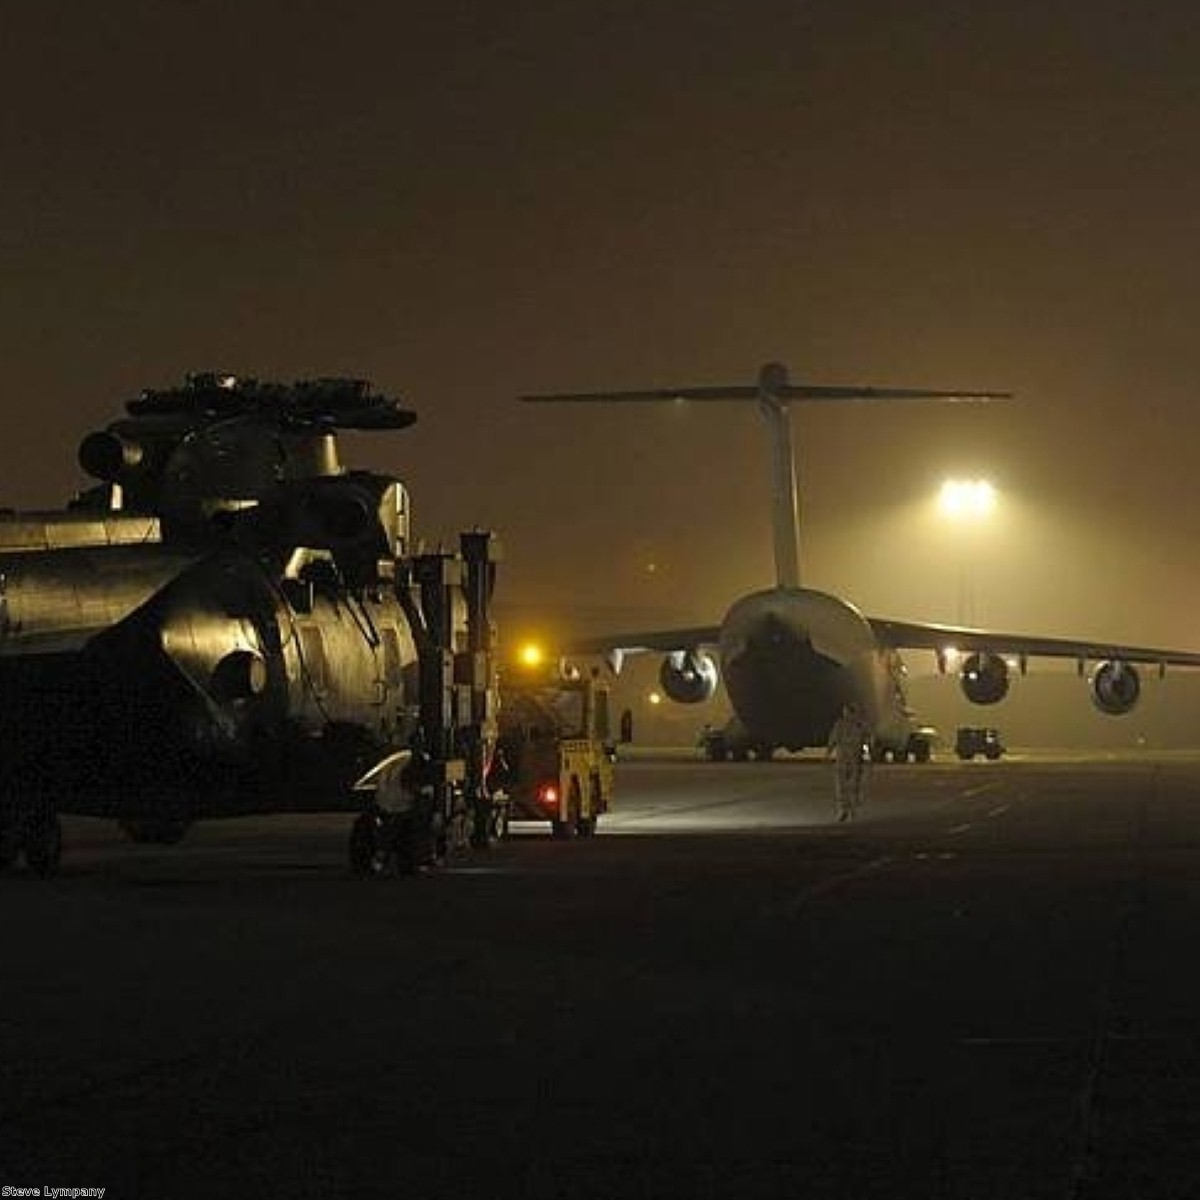 Blades clipped: The Merlin arrived at Camp Bastion transported in the C-17 carrier